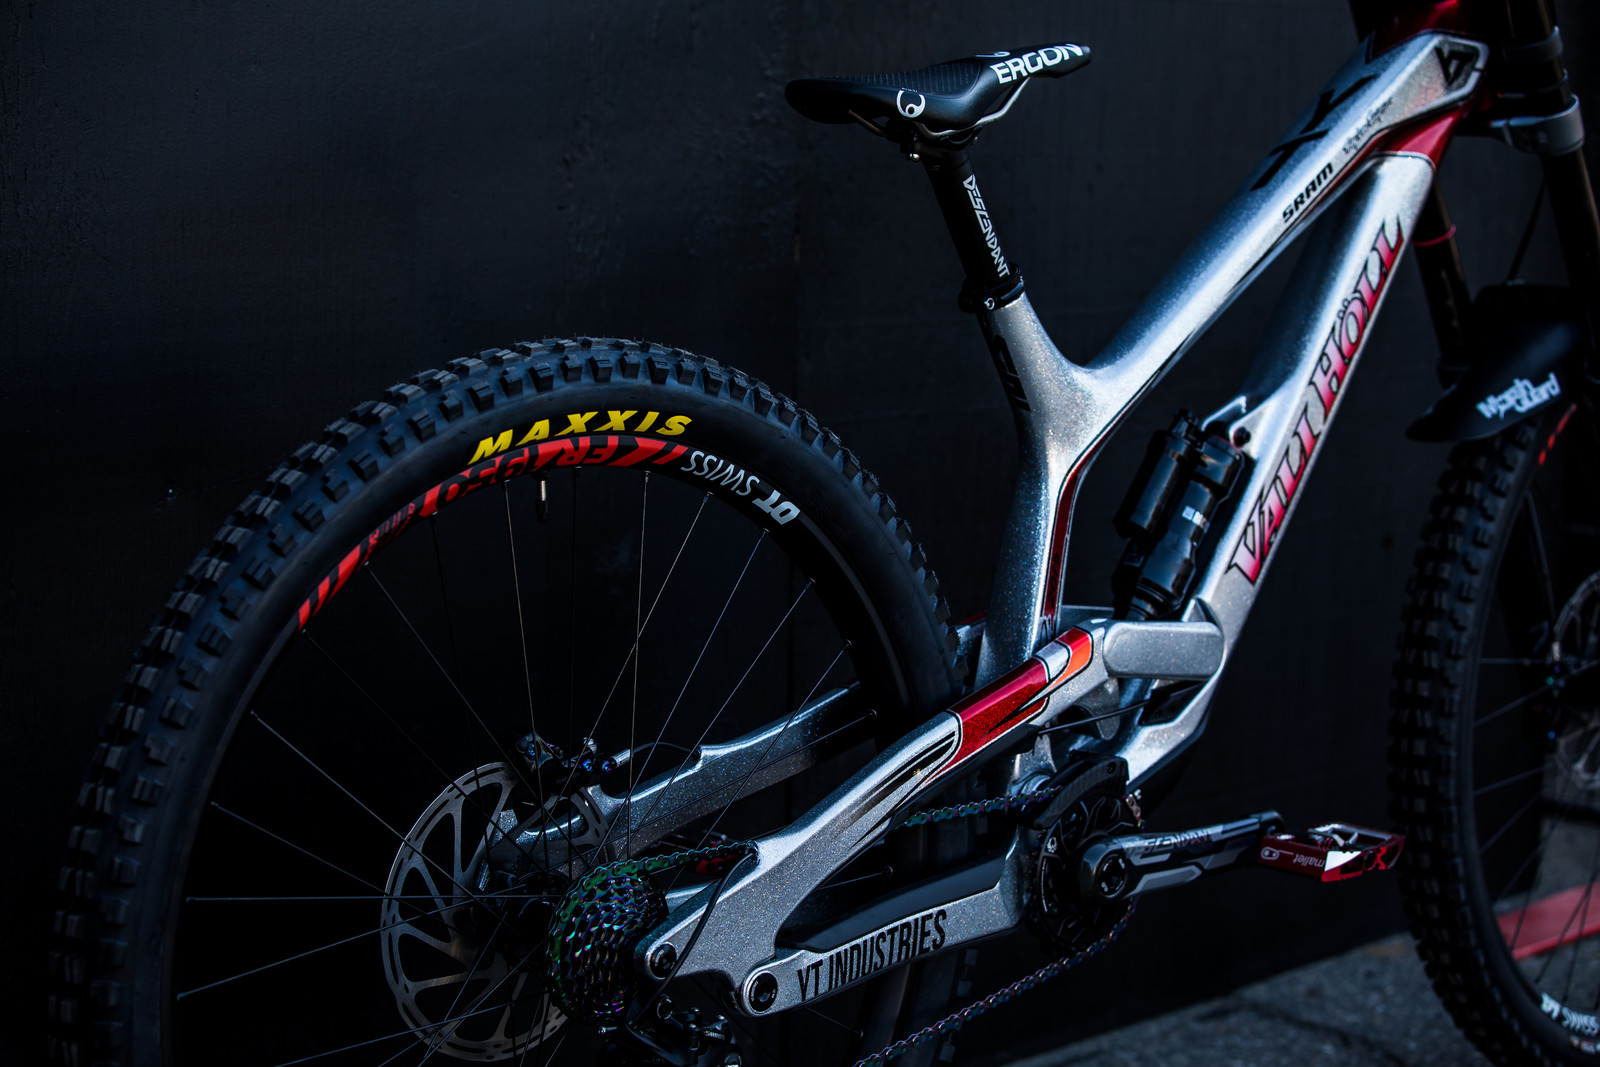 Vali Holl's YT TUES at 2019 Worlds MSA - Vali Holl's YT TUES at 2019 Worlds MSA - Mountain Biking Pictures - Vital MTB